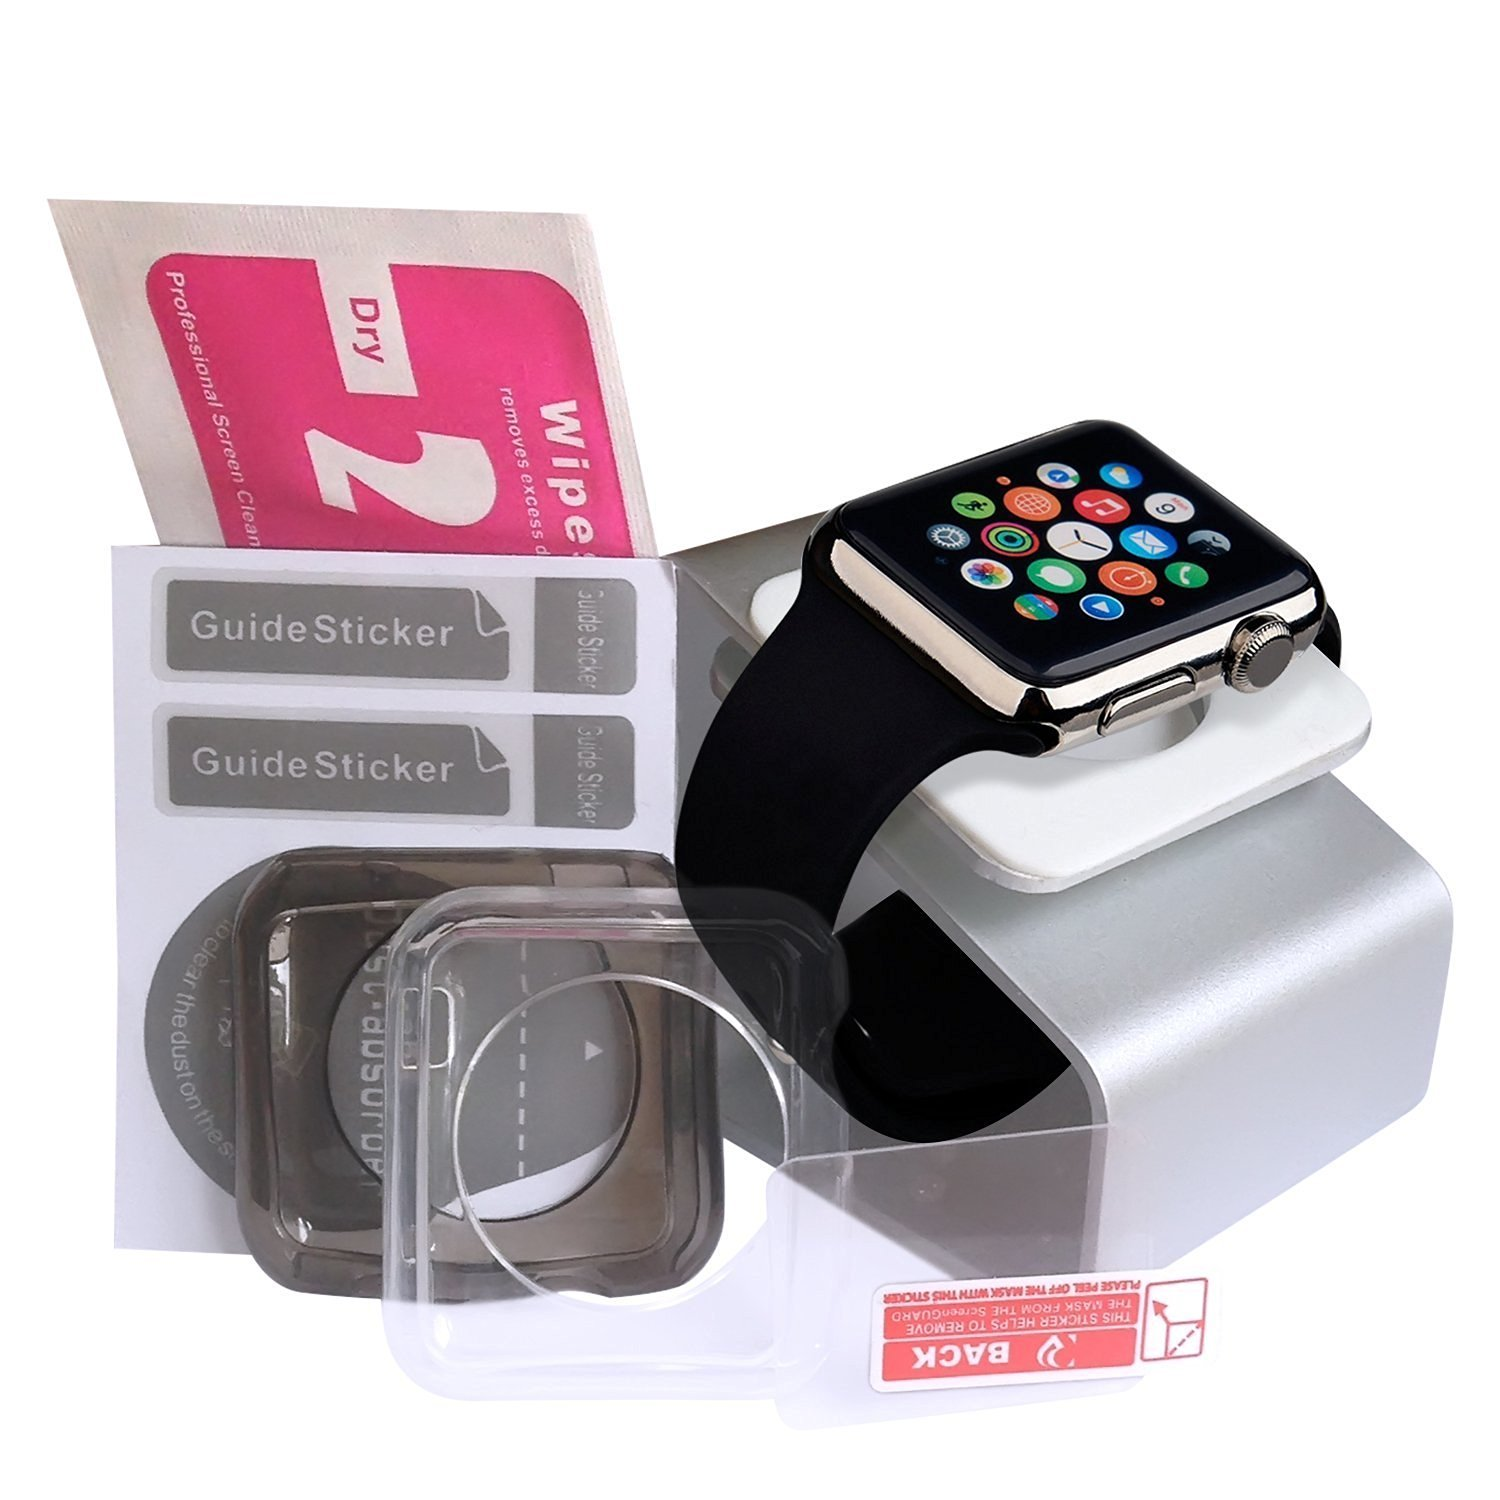 ULTIMATE Apple Watch Accessories Bundle: Apple Watch Stand [Docking Station / Cradle Holder] | Apple Watch Case X2 | FREE Additional Apple Watch Screen Protector. Great Apple Watch Bundle (38mm)